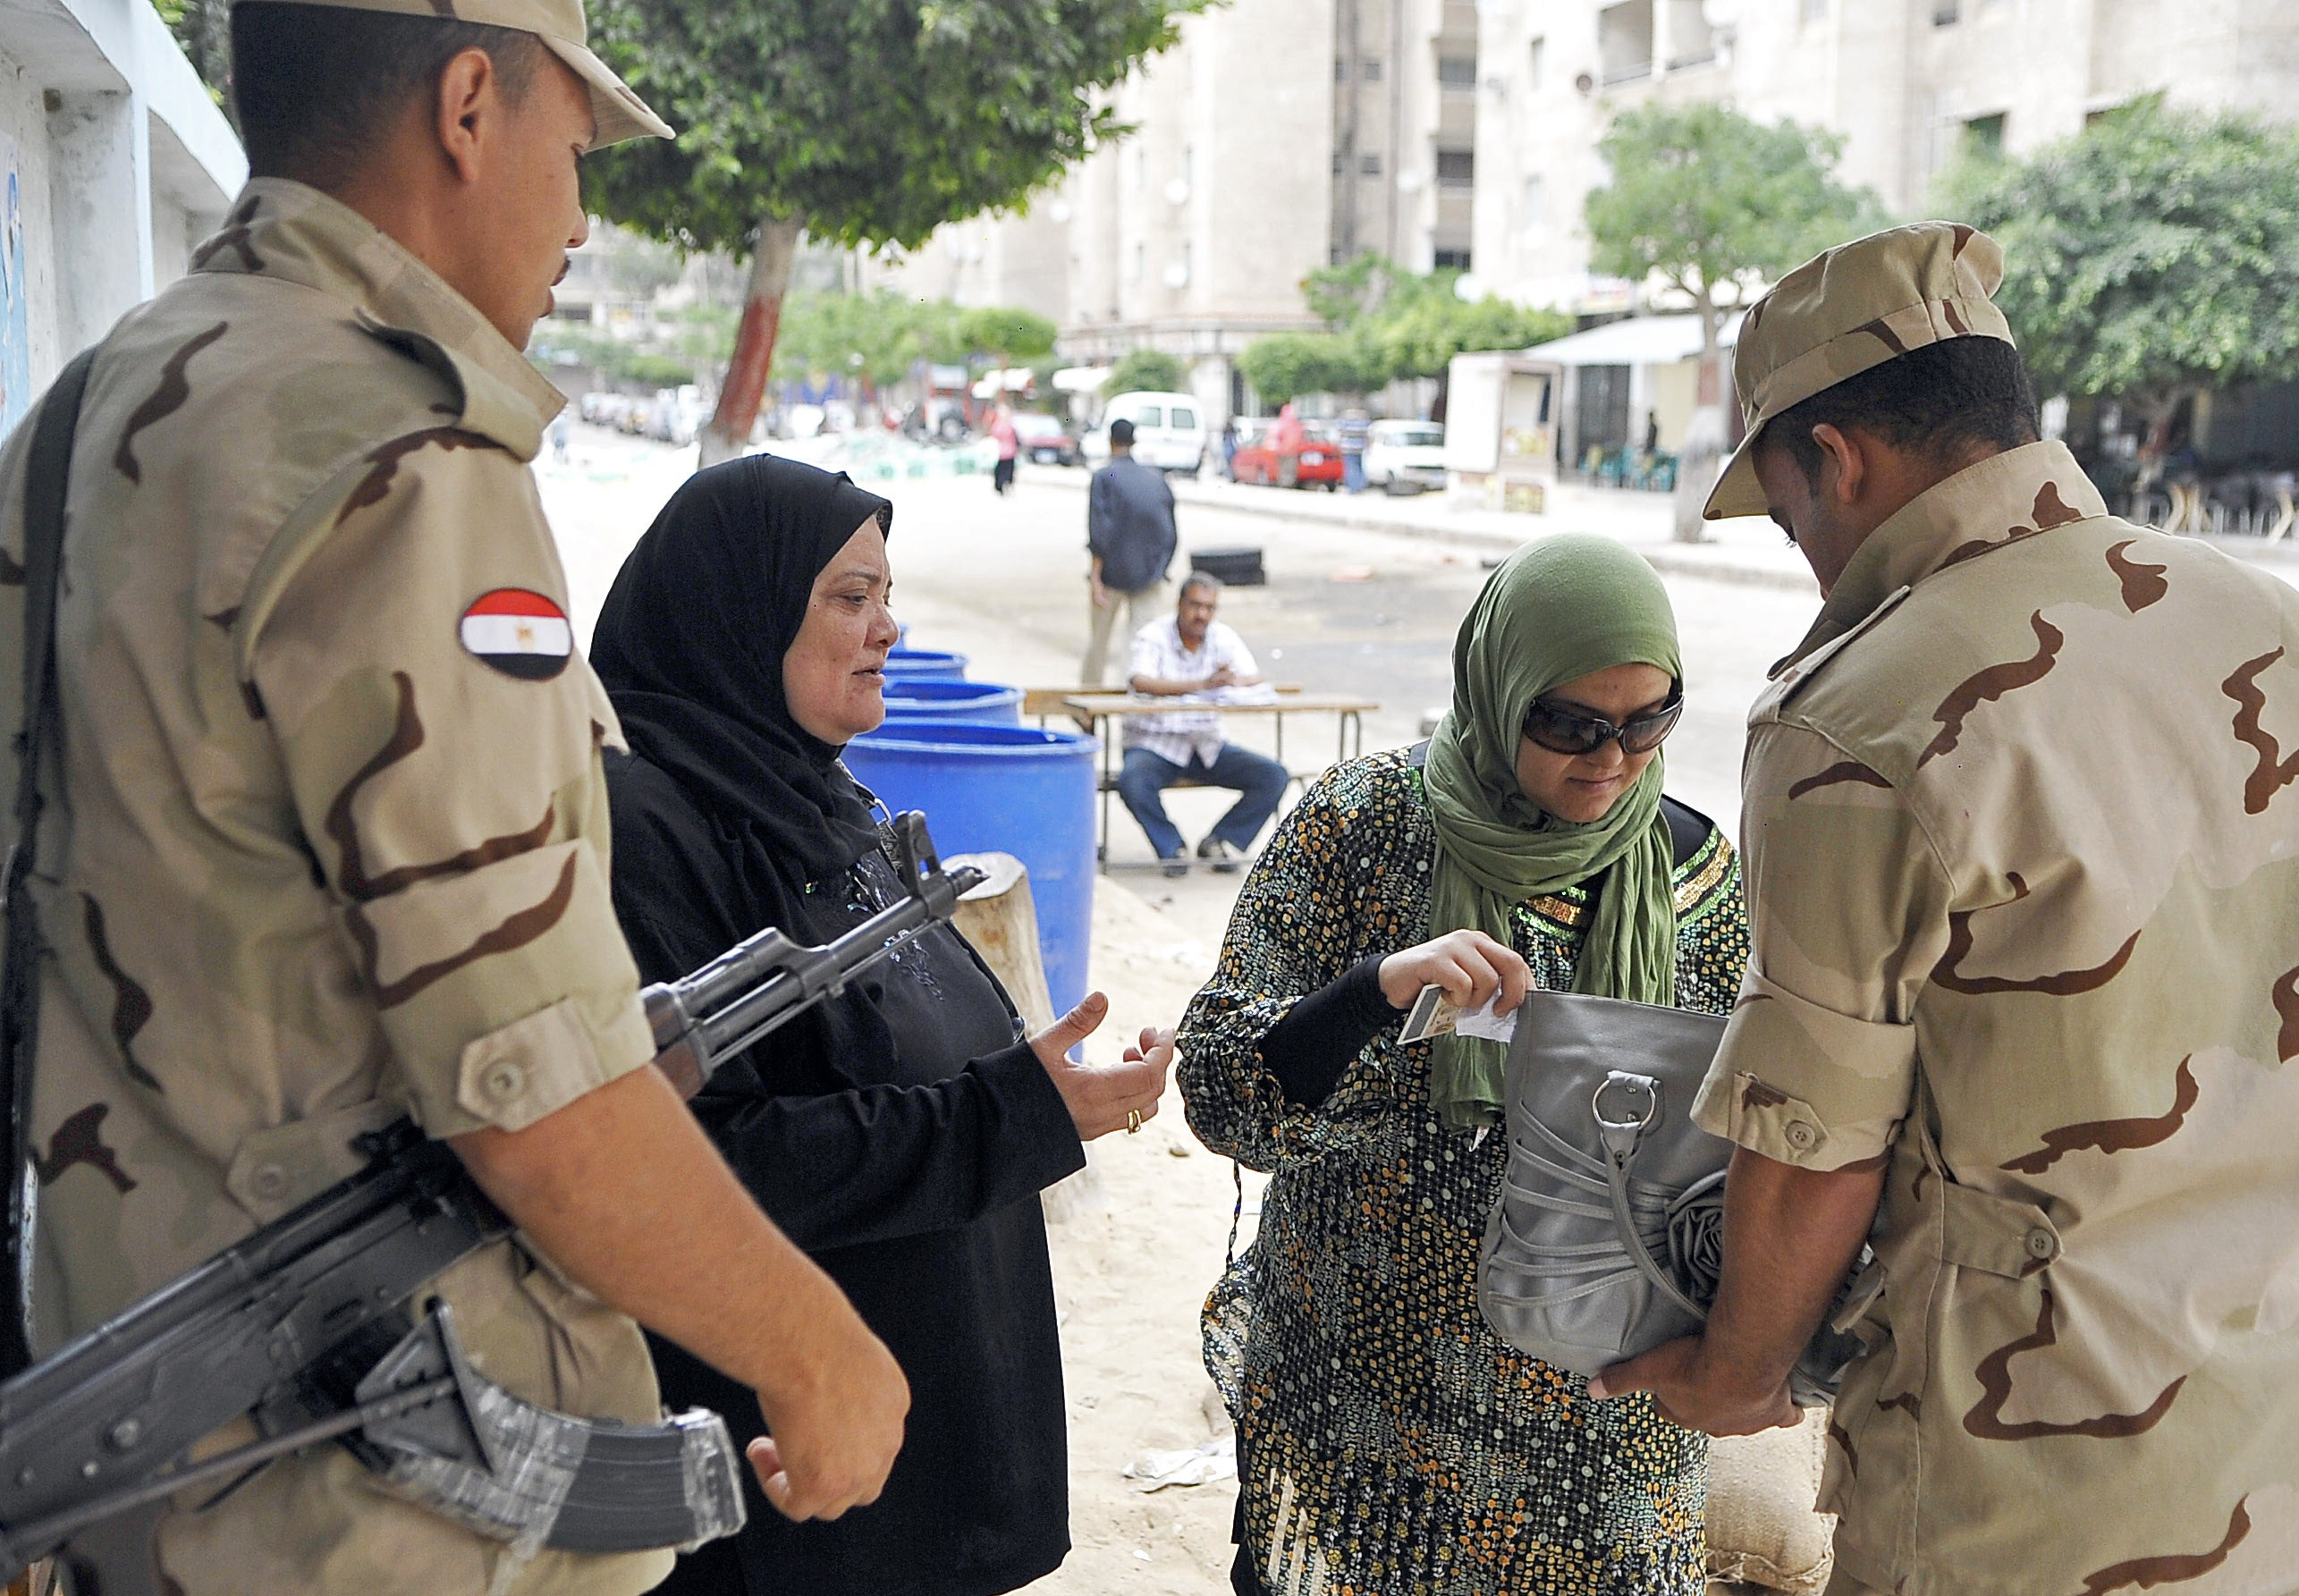 Egyptian security forces check a woman's bag outside a polling station as she arrives to cast her vote in Egypt's northern coastal city of Alexandria on May 28, 2014 after the electoral commission extended a presidential vote for a third day, amid reports of a low turnout in the first poll after the overthrow of Islamist leader Mohamed Morsi, state media said. About 37 percent of Egypt's eligible voters cast ballots in two days of presidential elections, an electoral official said.  (AFP PHOTO / STR)